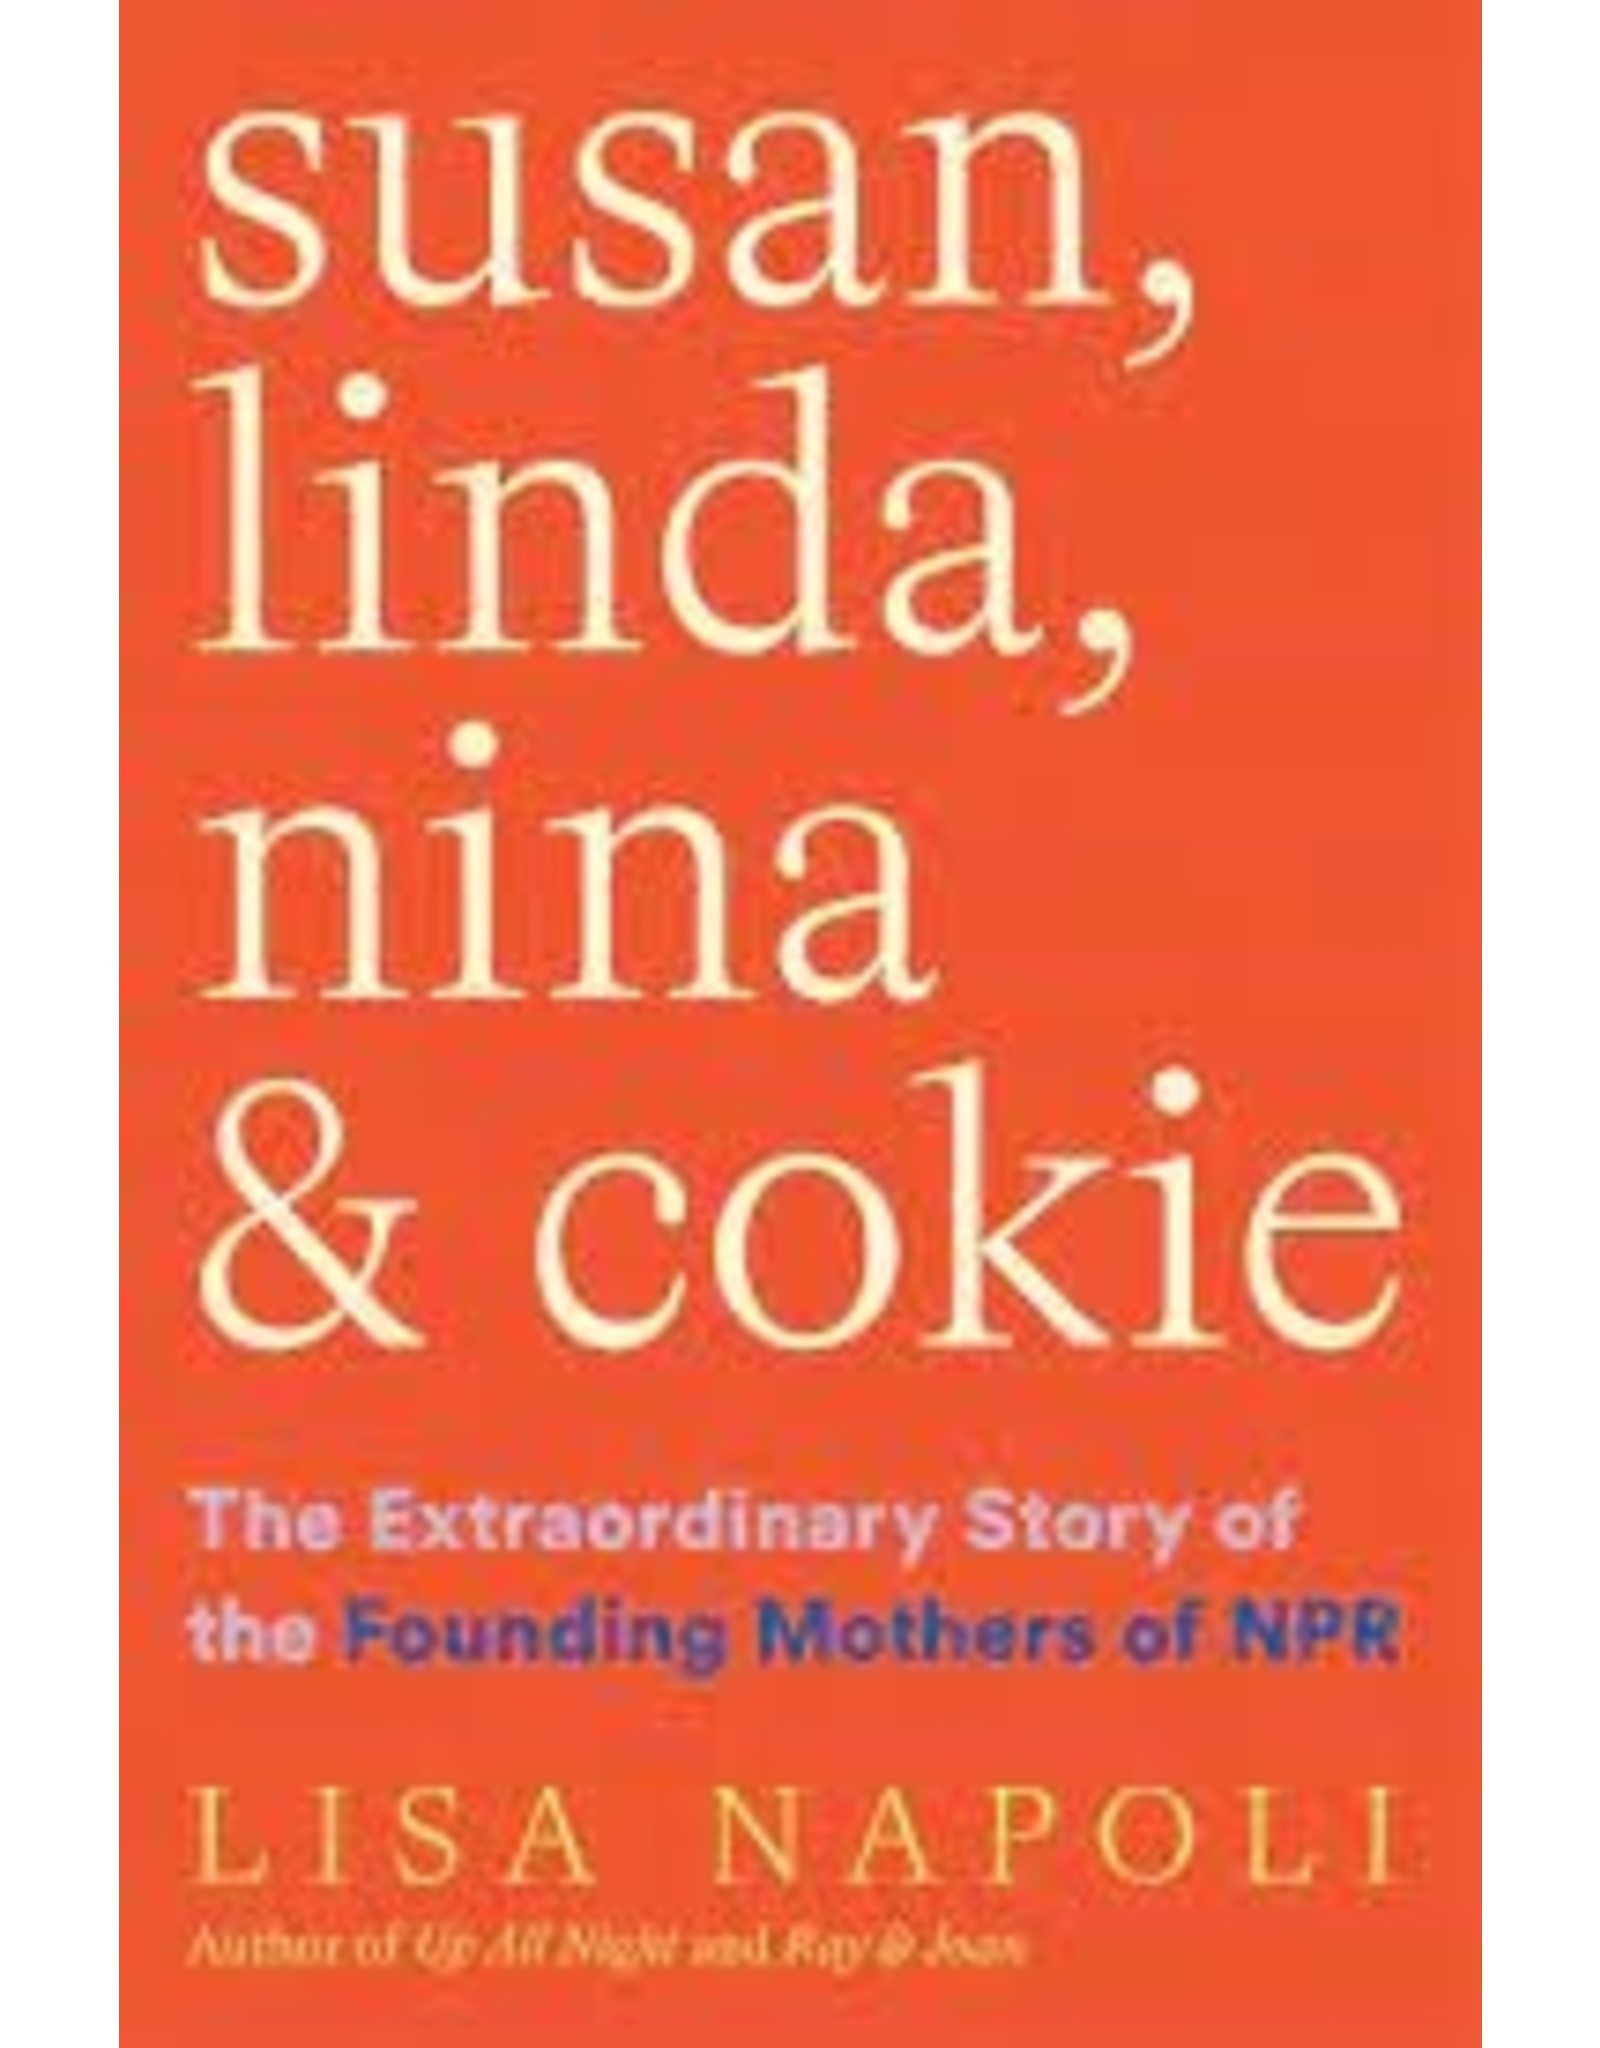 Books Susan, Linda, Nina & Cokie : The Extraordinary Story of the Founding Mothers of NPR  by  Lisa Napoli